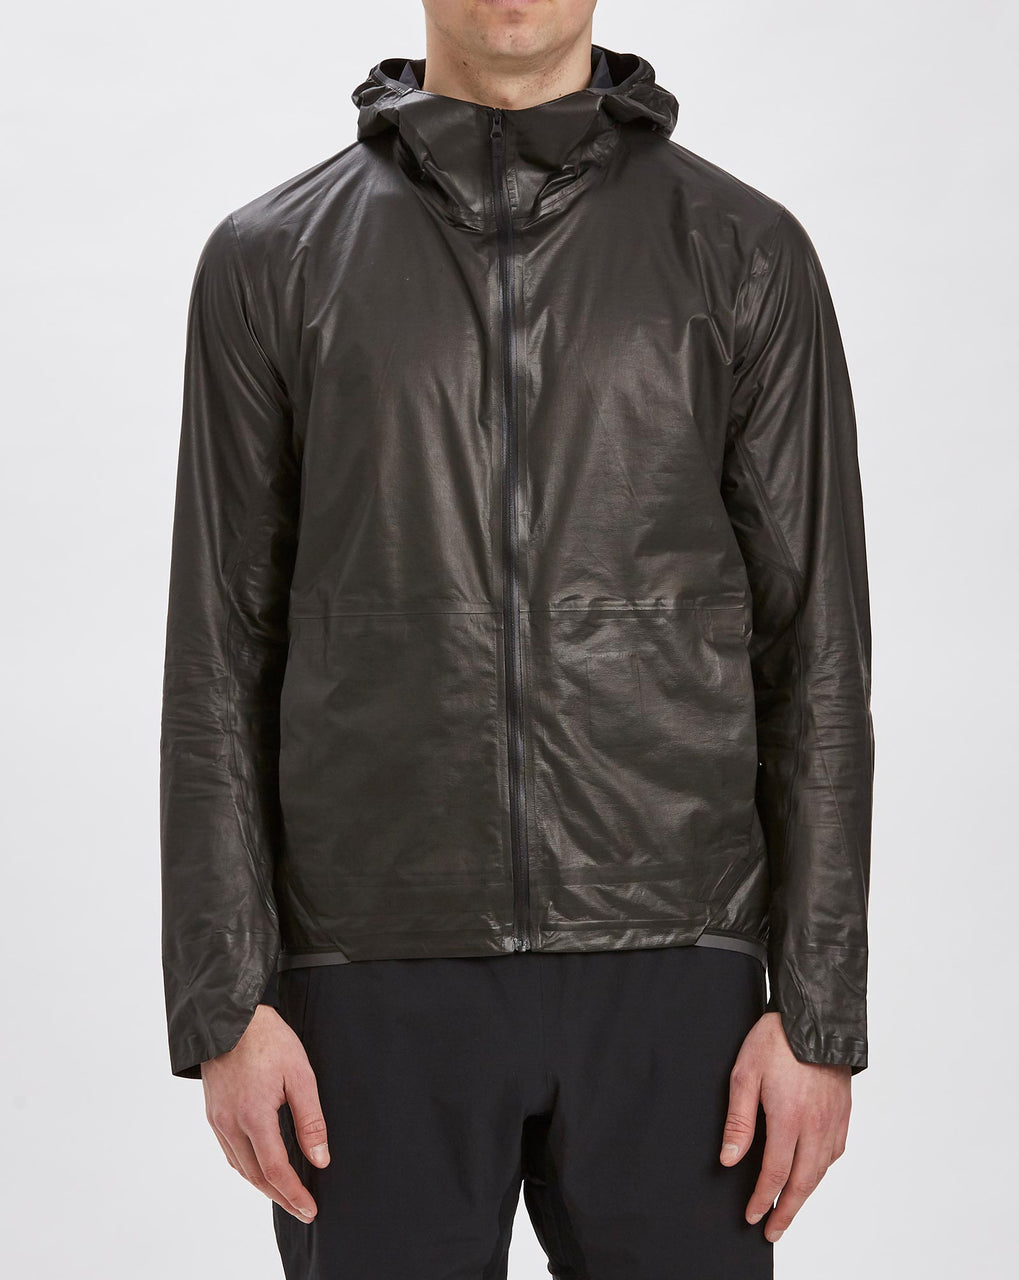 Veilance Rhomb Jacket (Black)